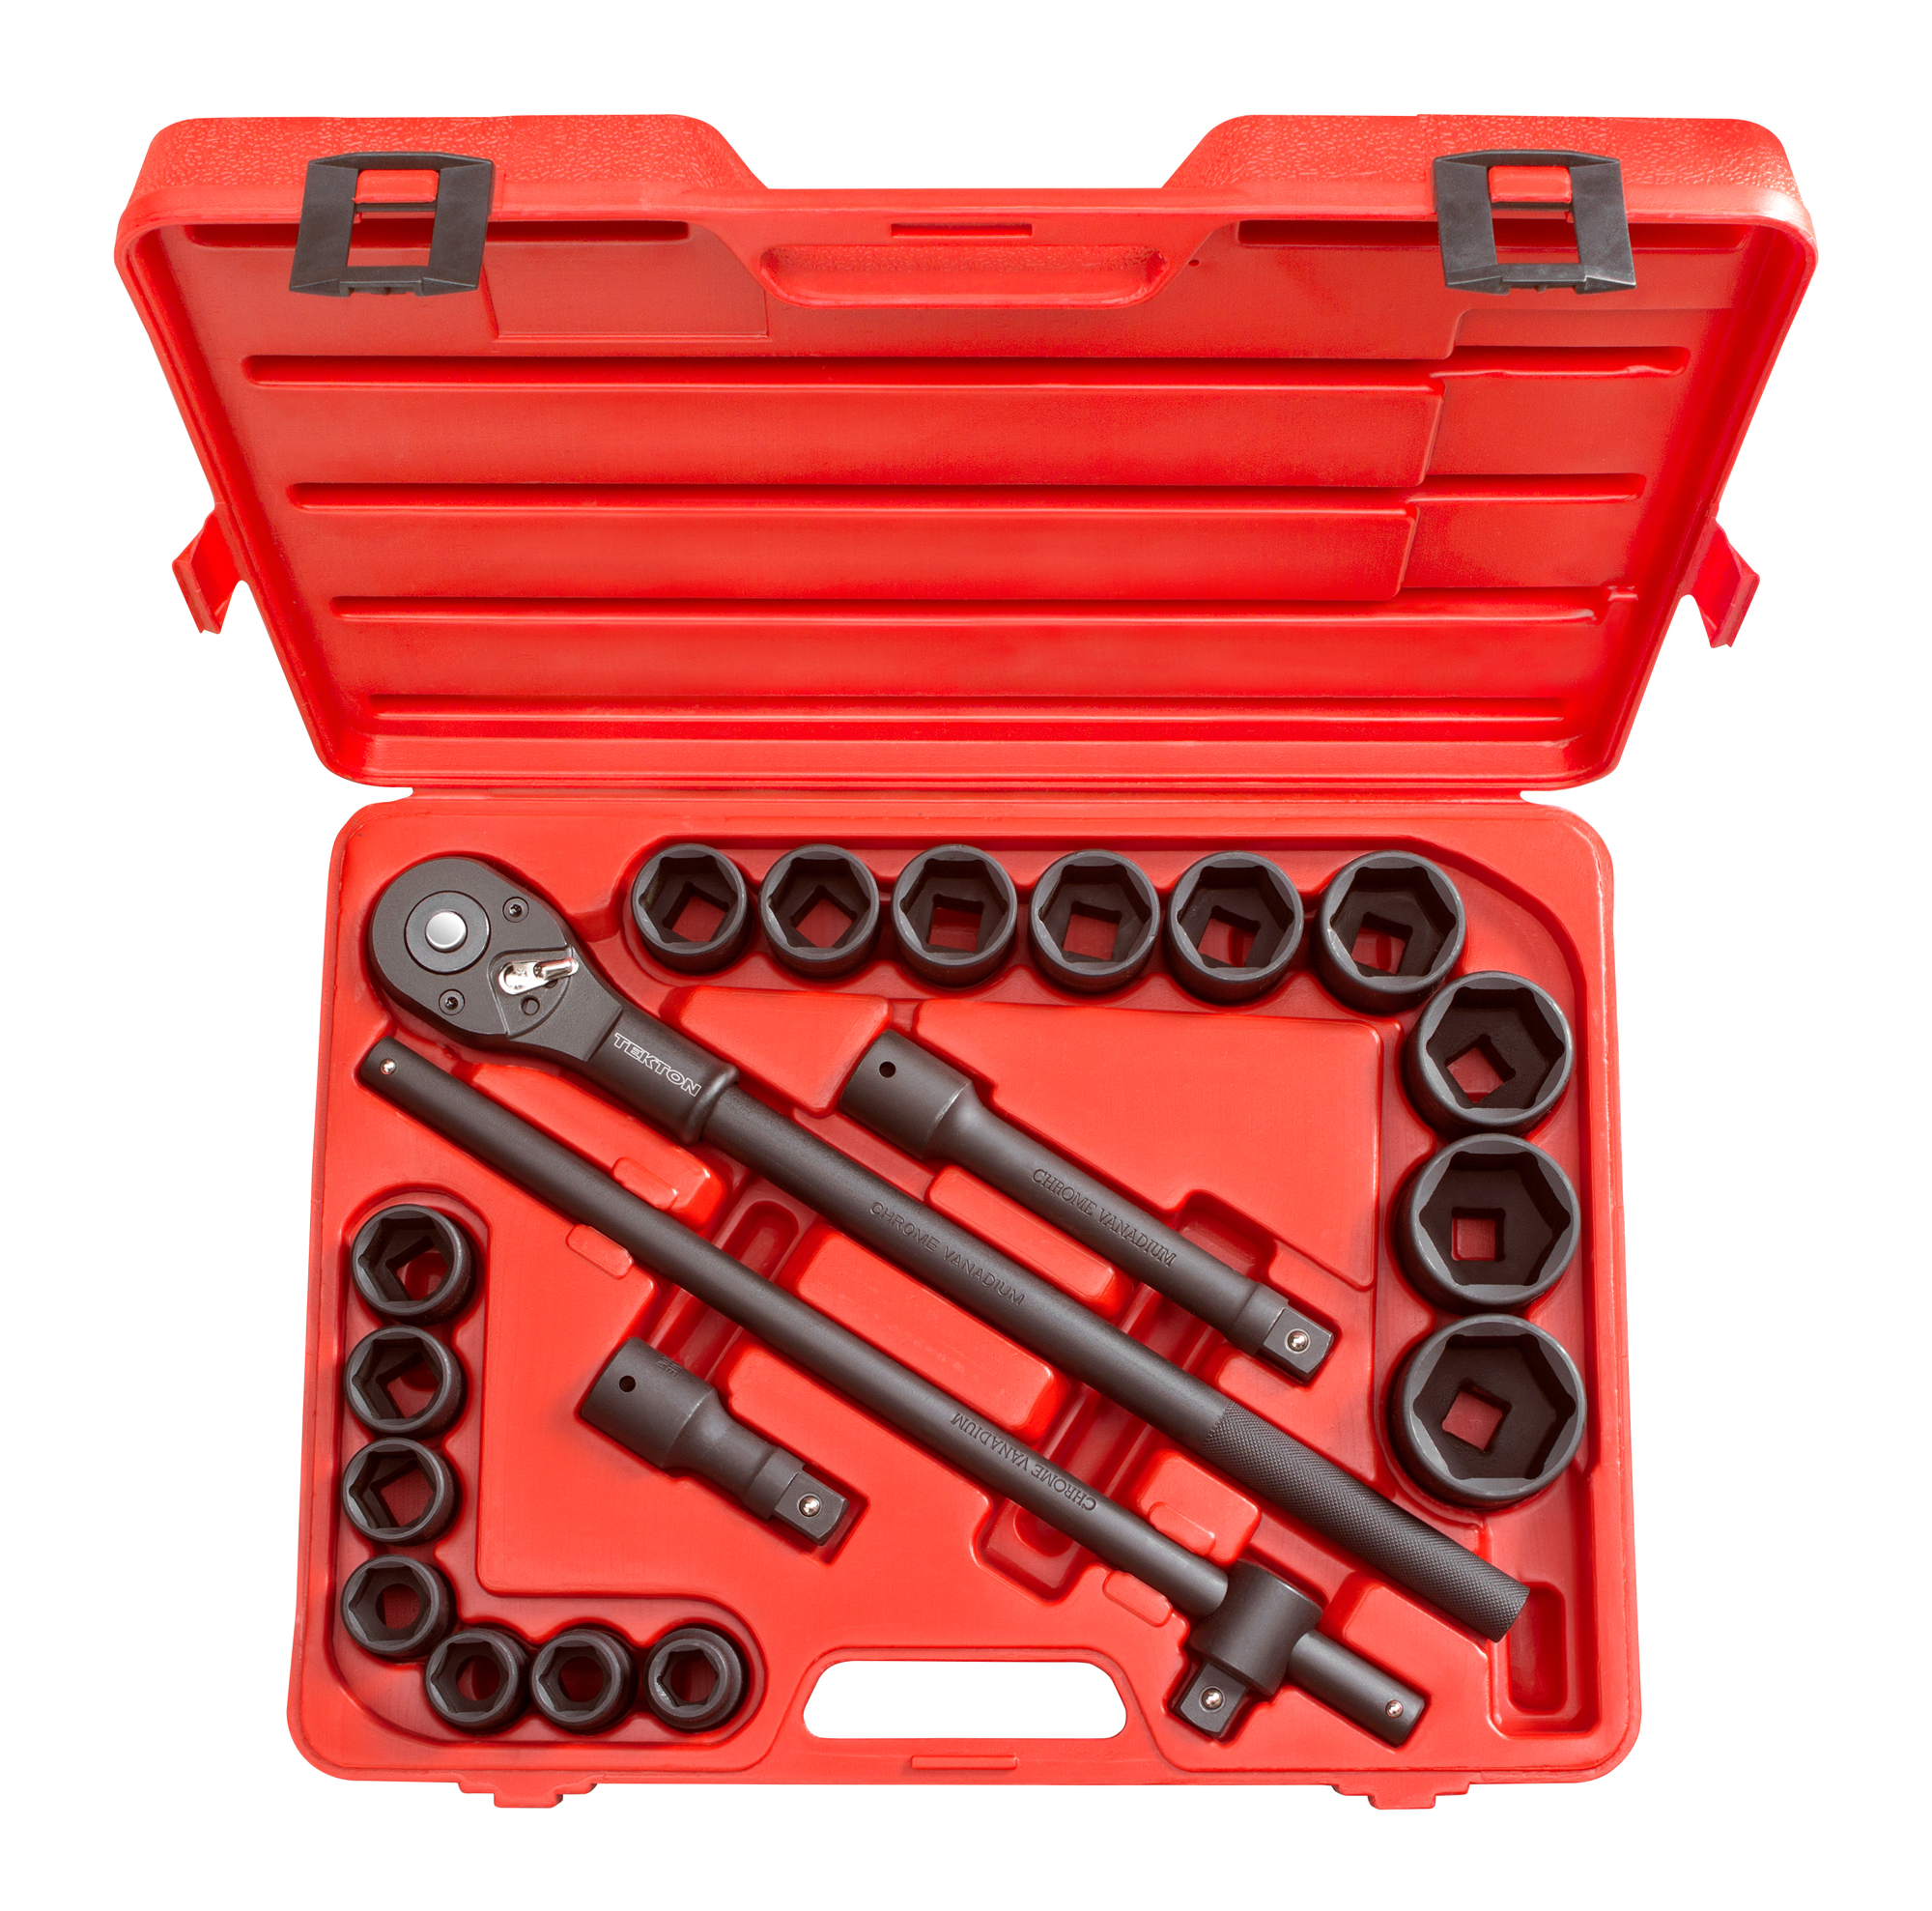 TEKTON 3/4-Inch Drive Impact Socket Set, Inch, Cr-V, 6-Point, 3/4-Inch - 2-Inch, 21-Piece | 4899